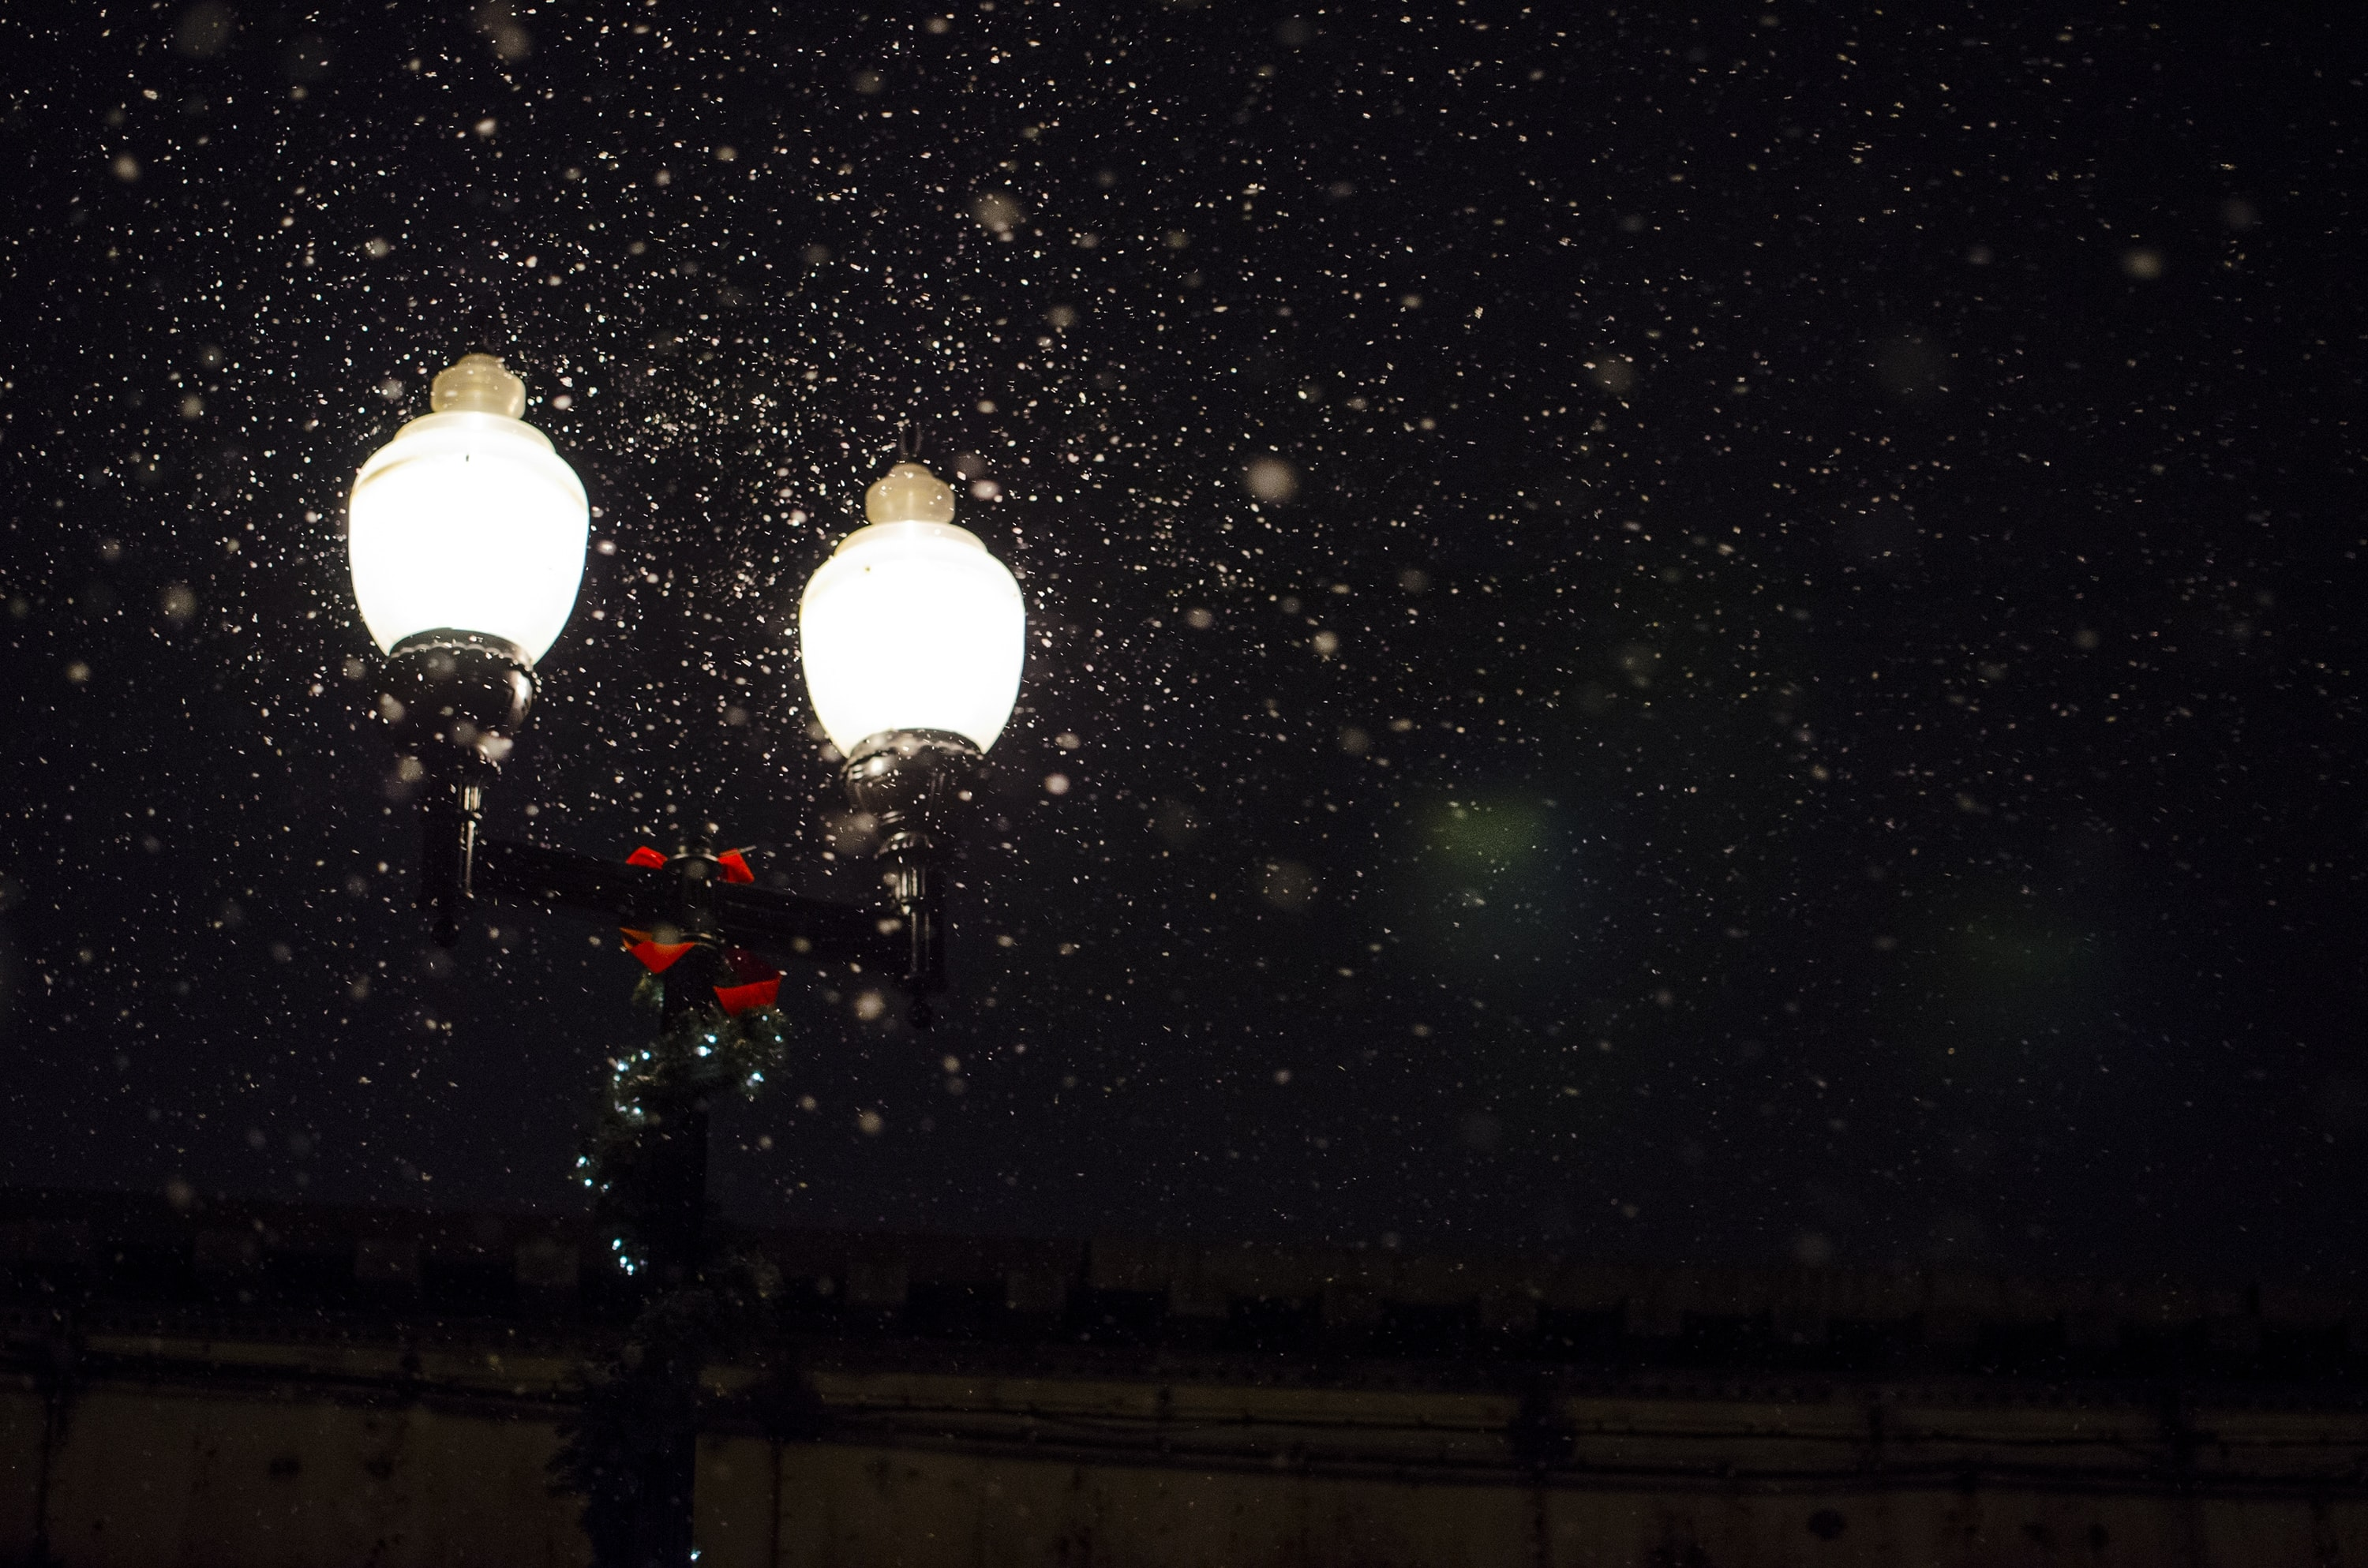 Lit up black lamppost in night sky illuminating specks of snow